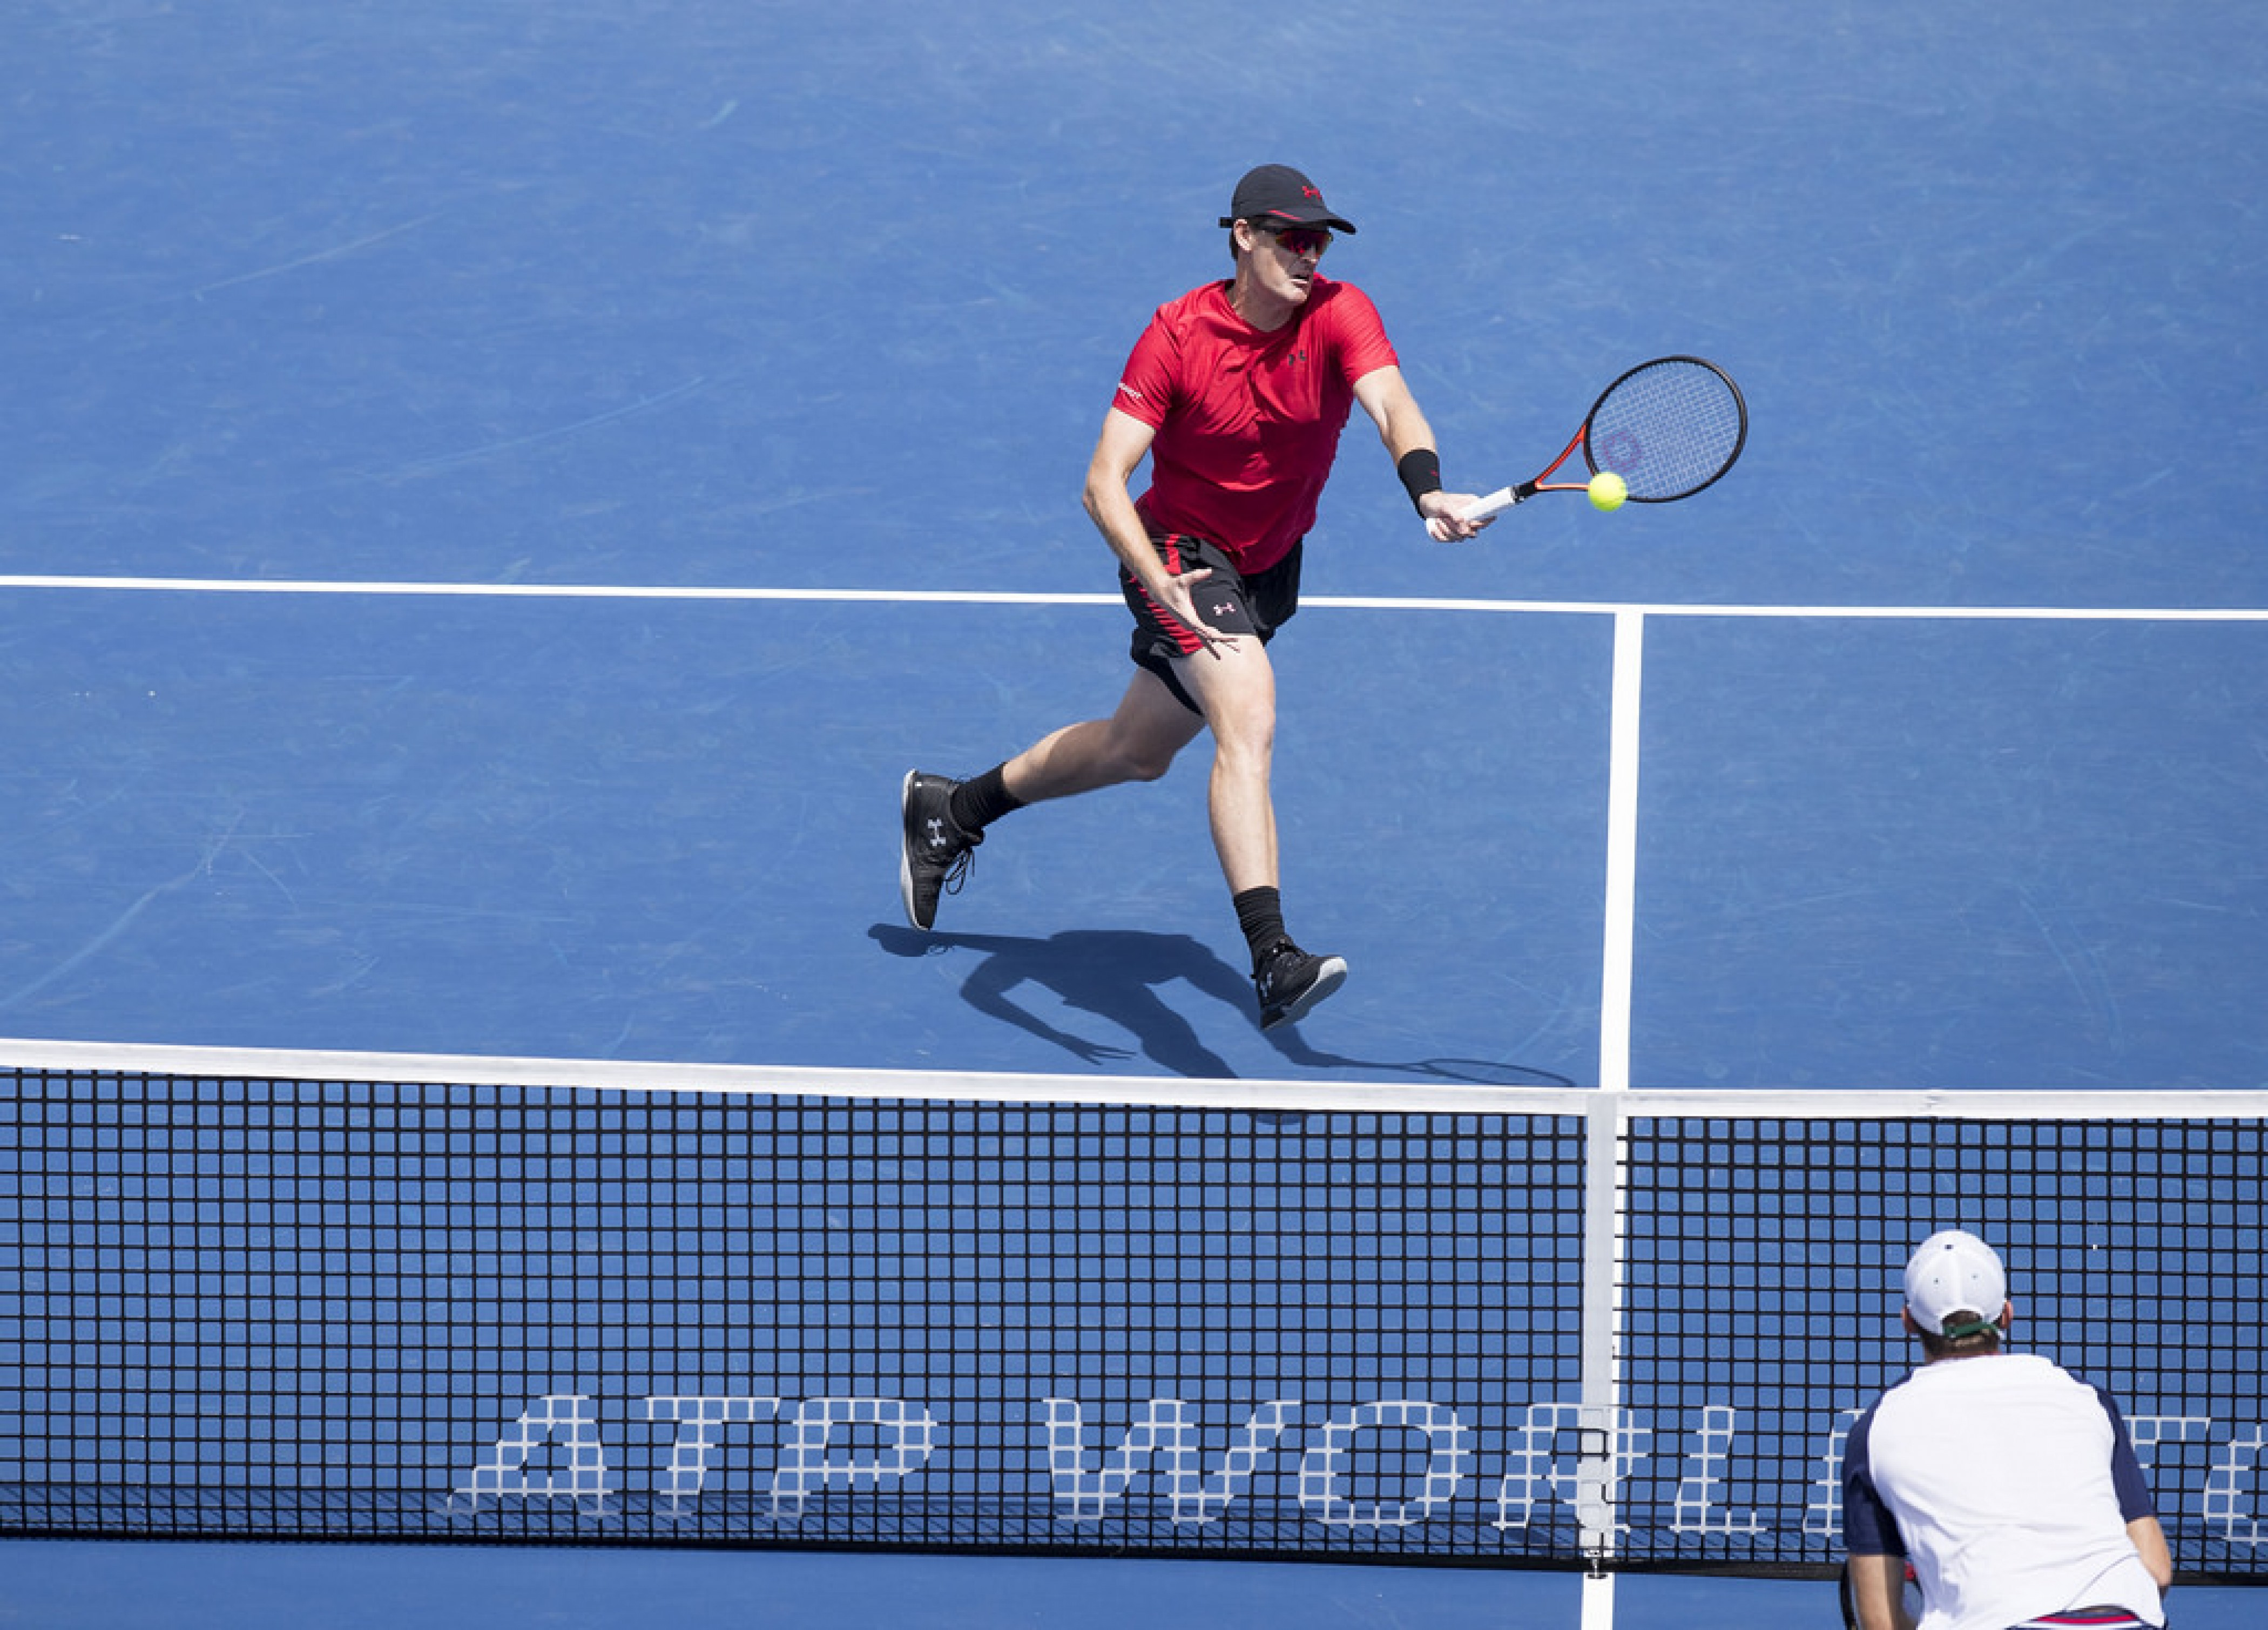 Davis Cup: Jamie Murray and Dominic Inglot restore Great Britain's advantage in clash with Uzbekistan